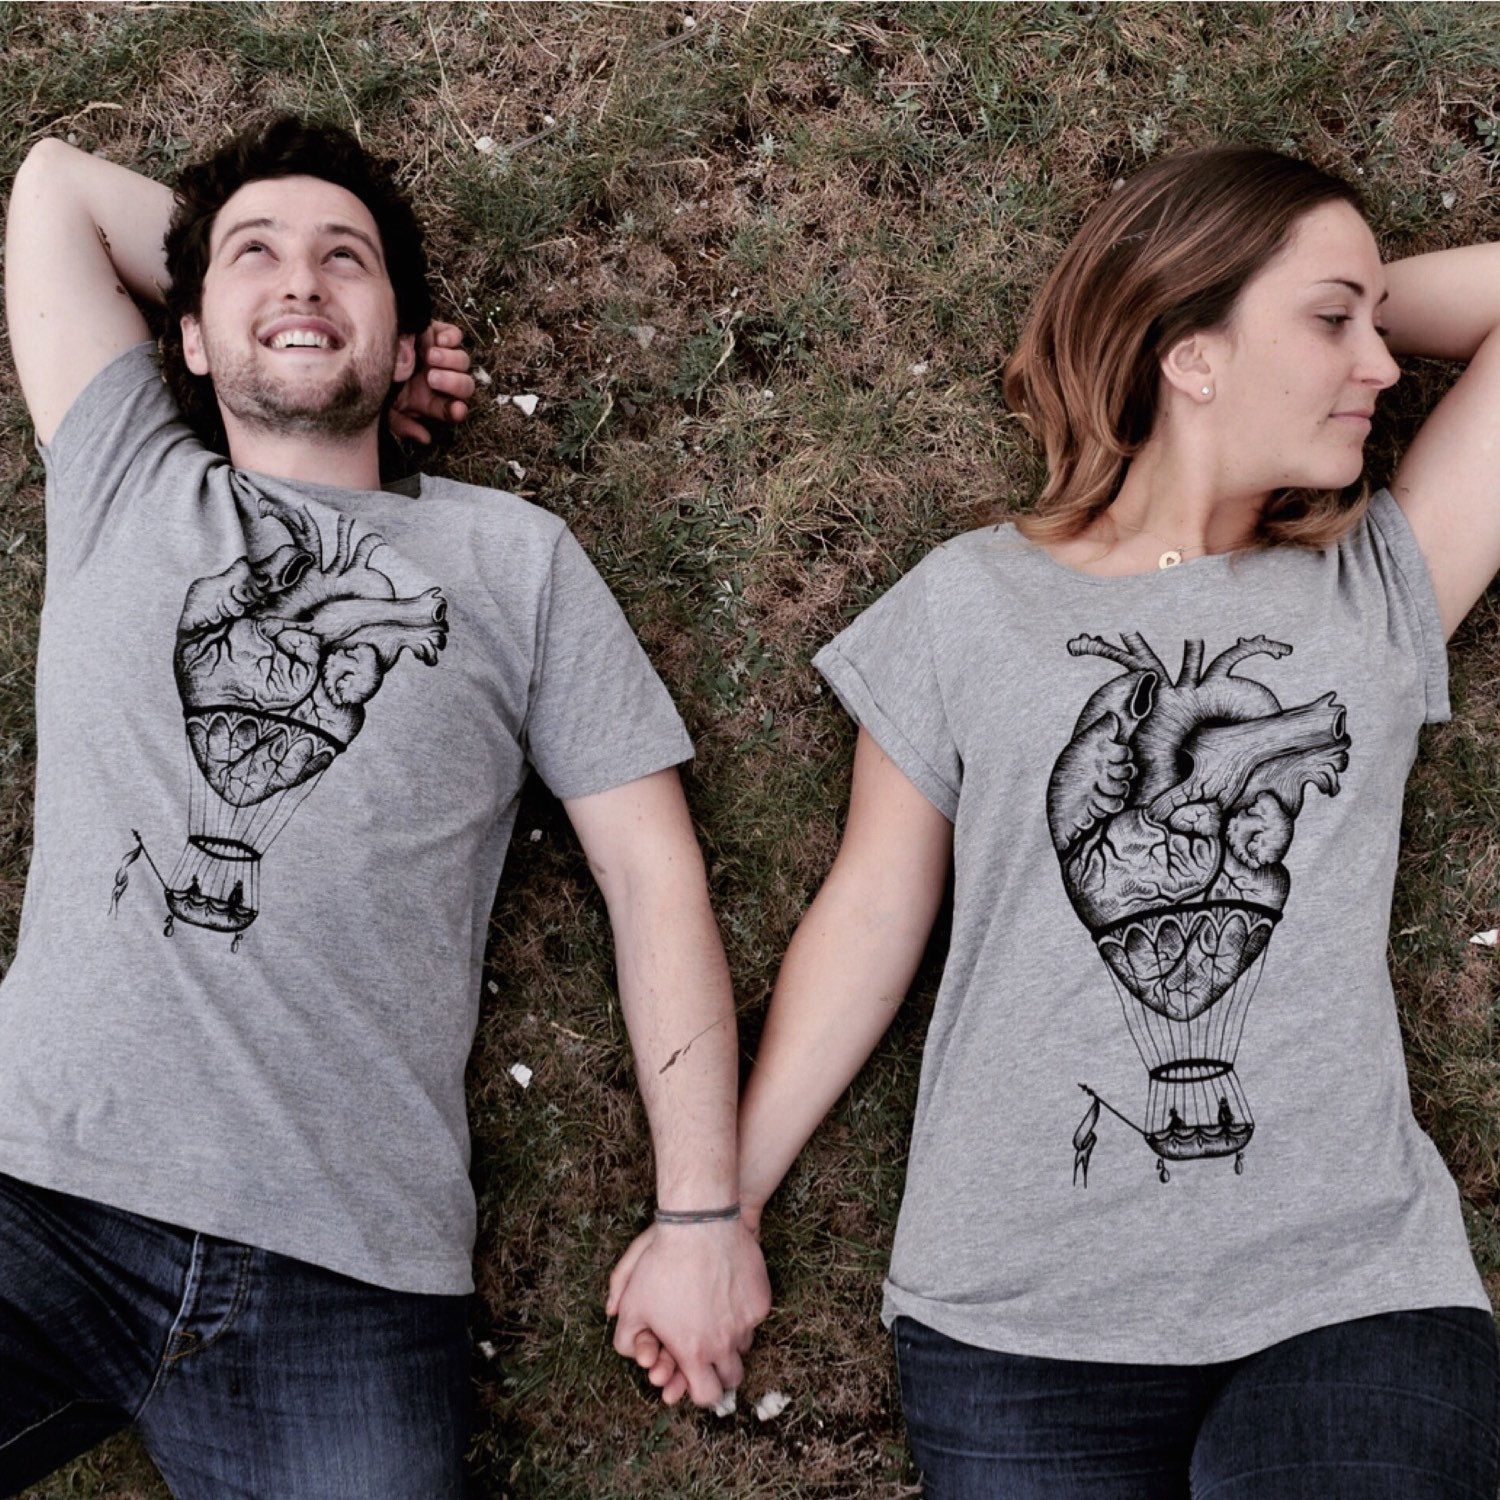 Two hearts beating as one! This anatomical heart t-shirt or couples t-shirts set makes the perfect gift for your favorite couple. ❤️❤️